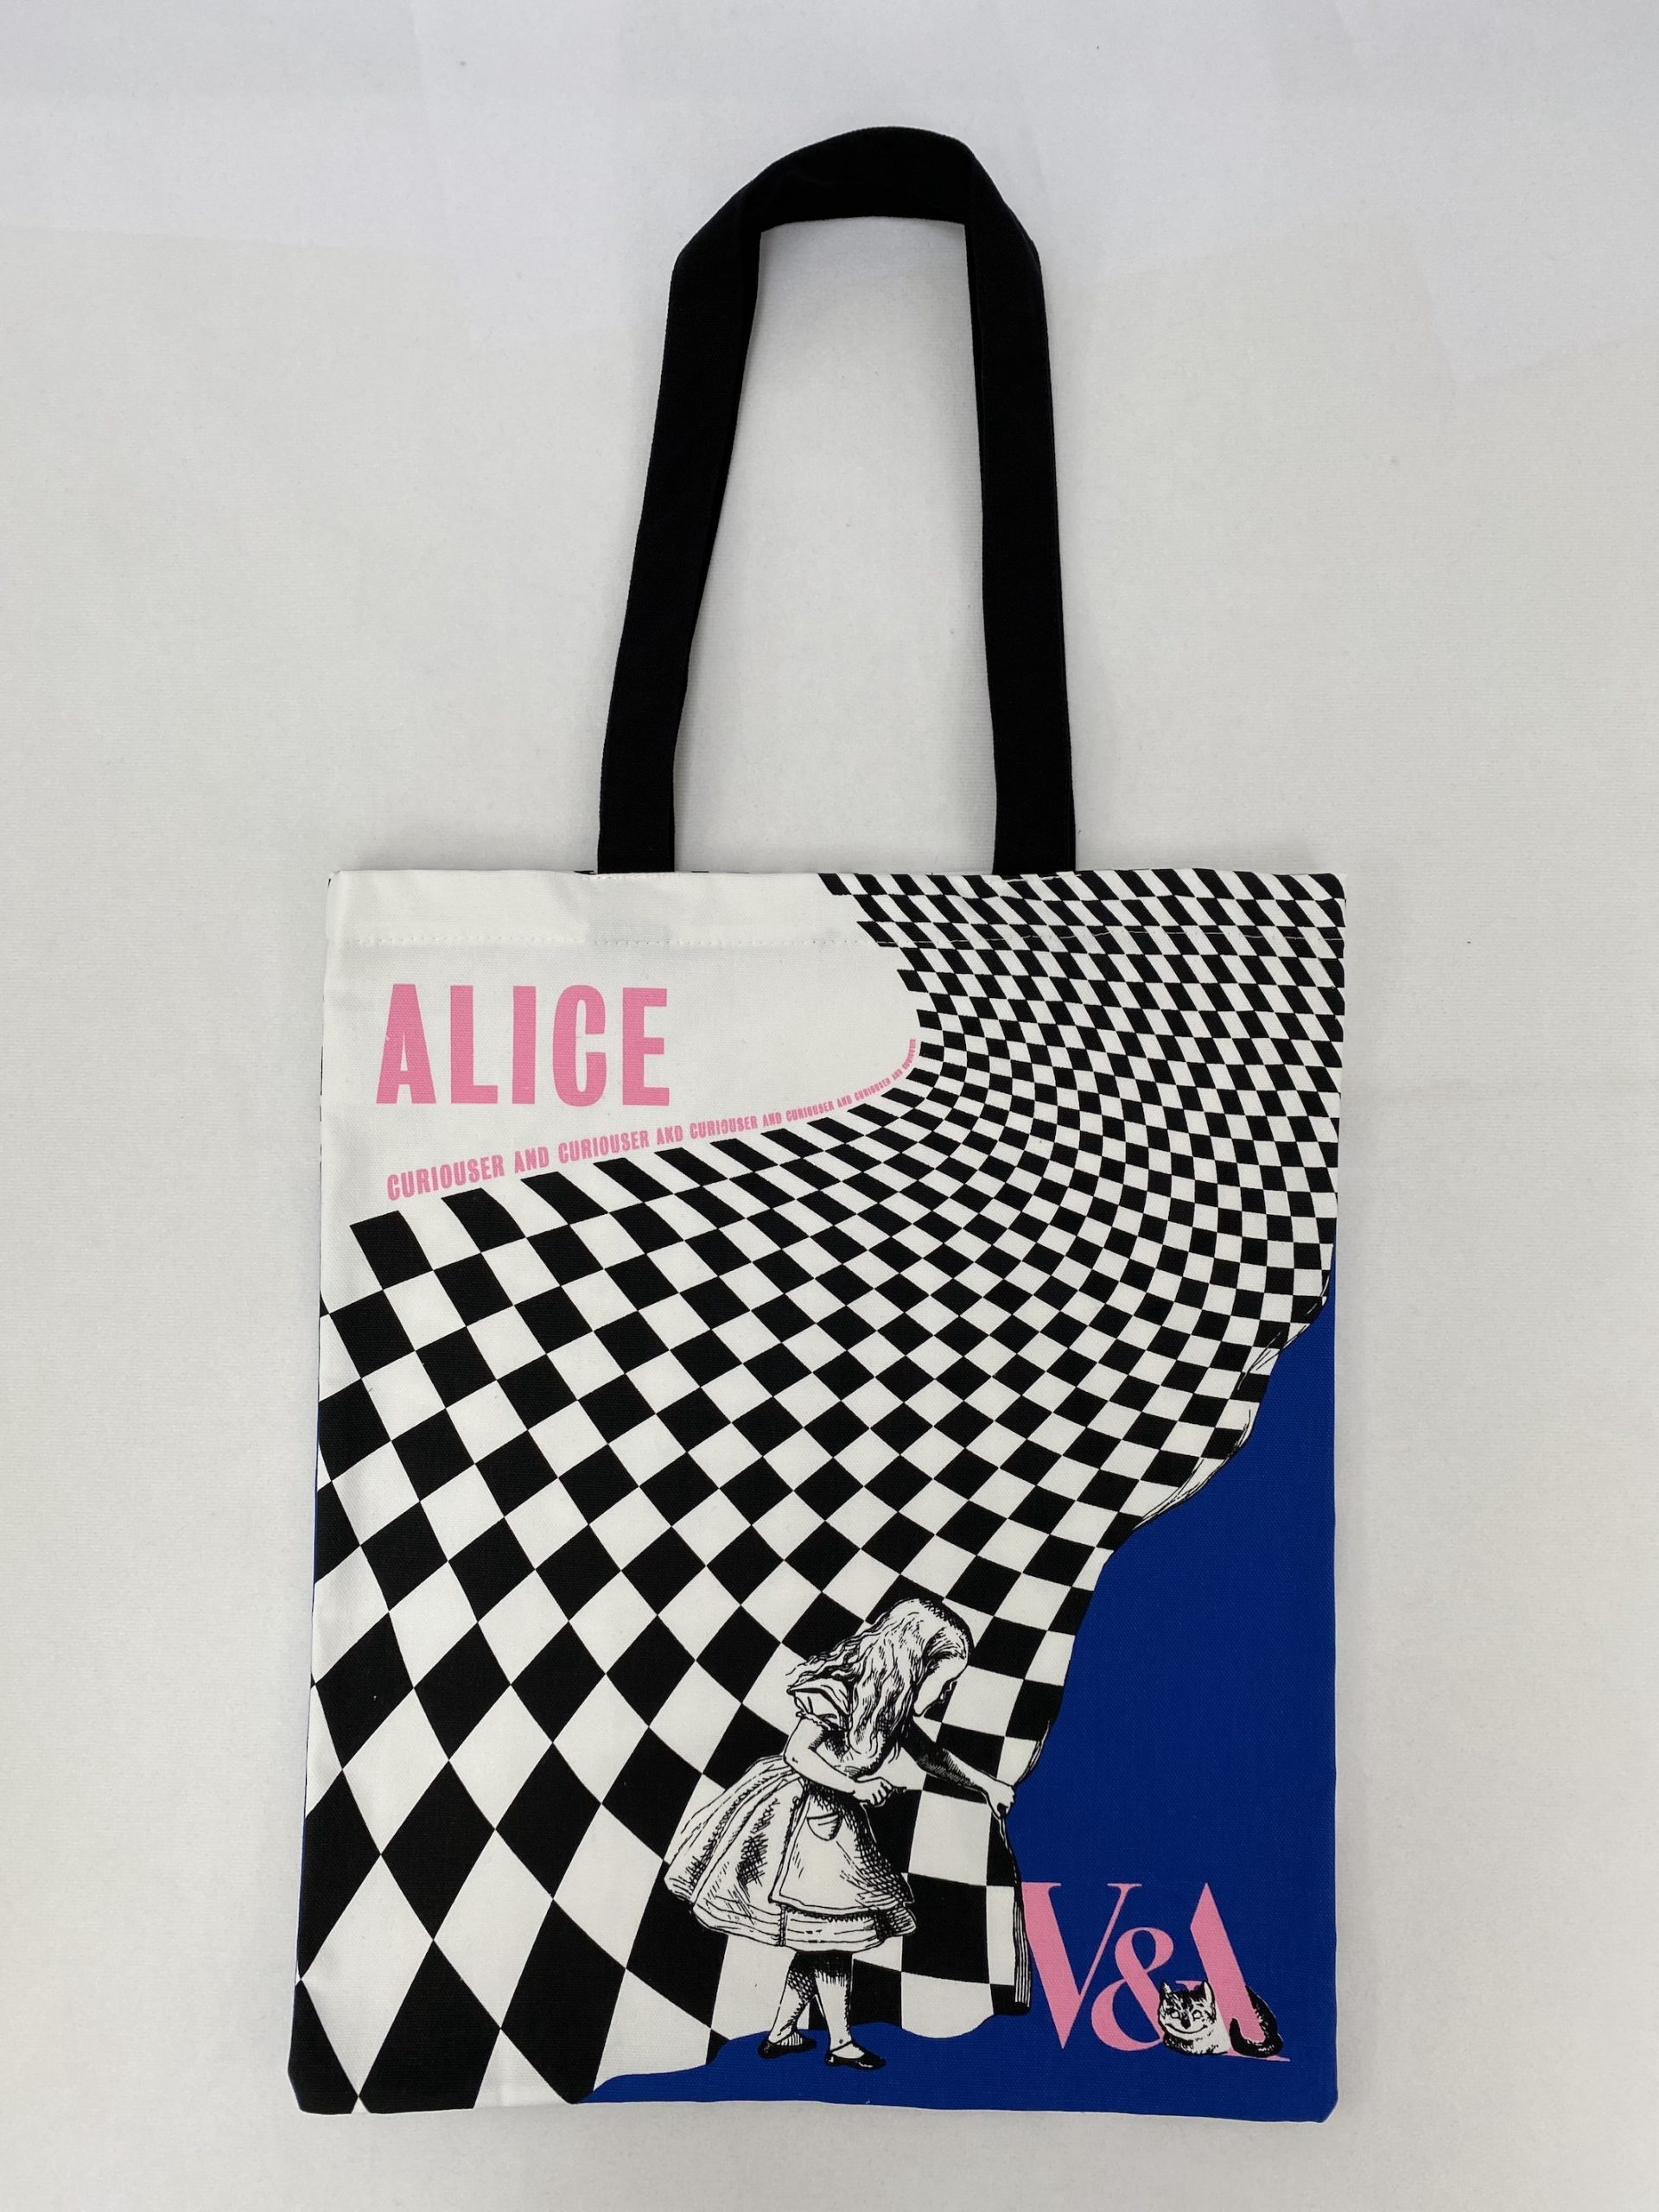 Screen printed bespoke bag for the V&A by Paul Bristow